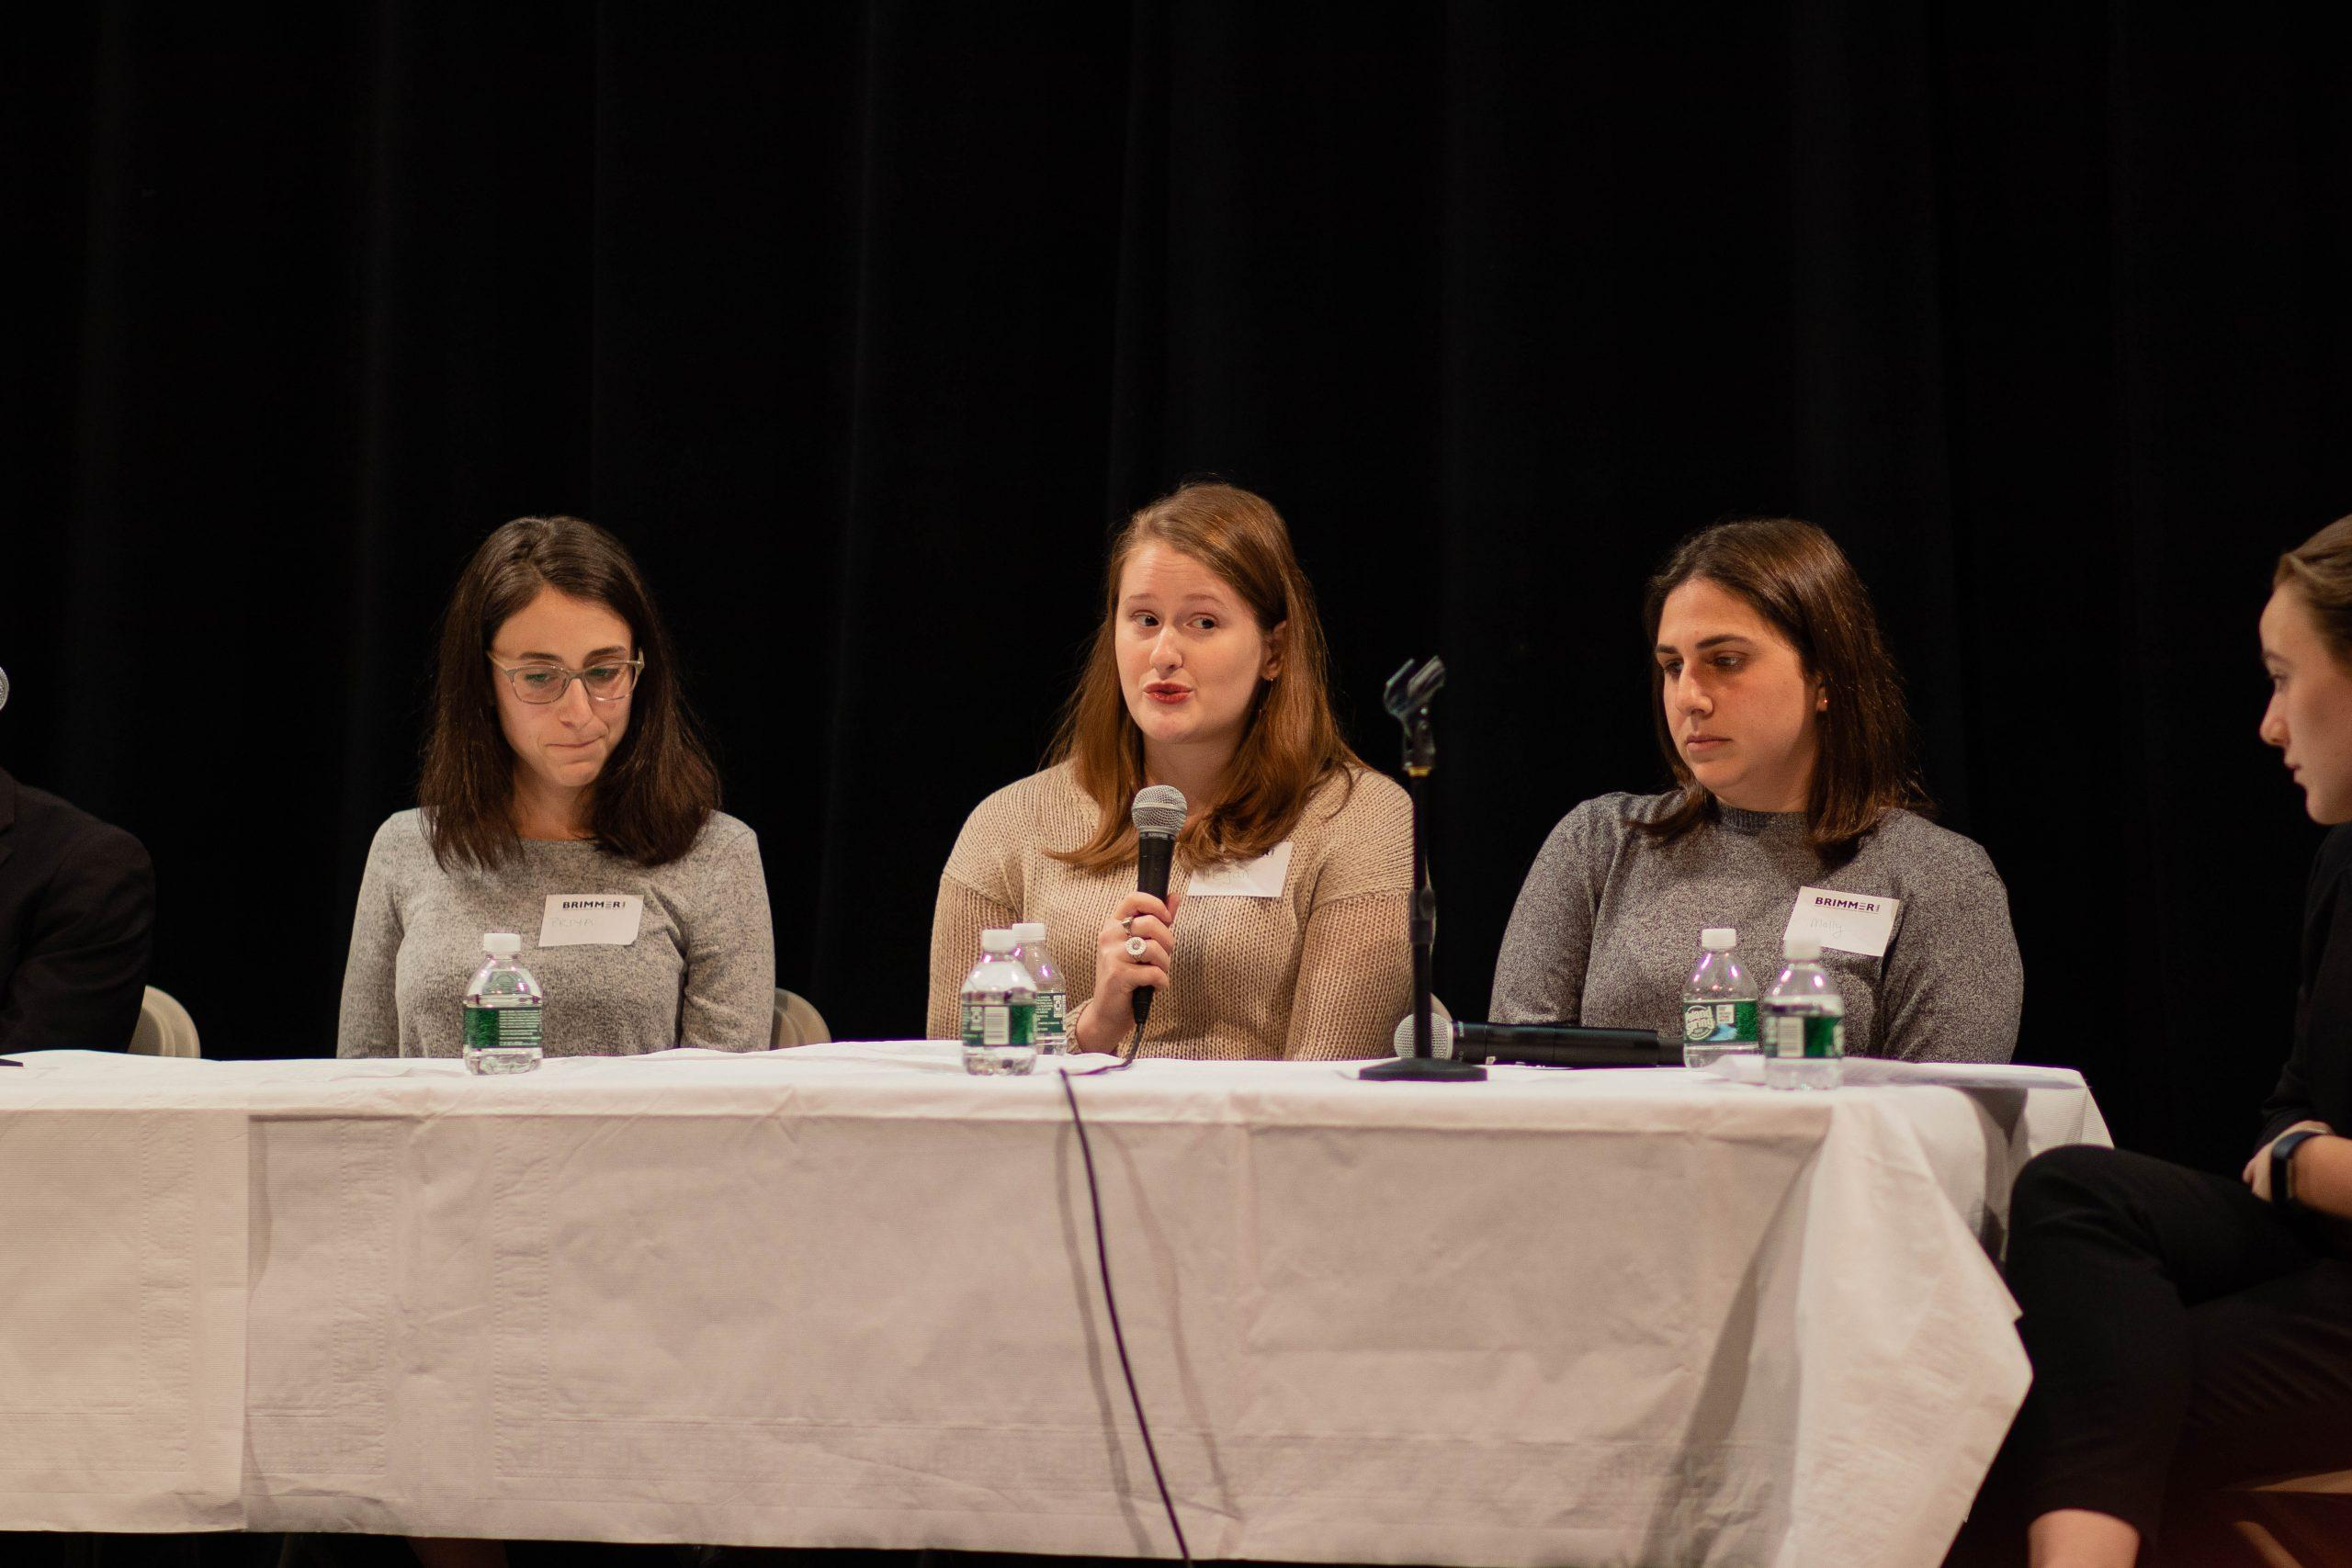 Alumni+spoke+on+a+panel+about+their+experiences+at+Brimmer.